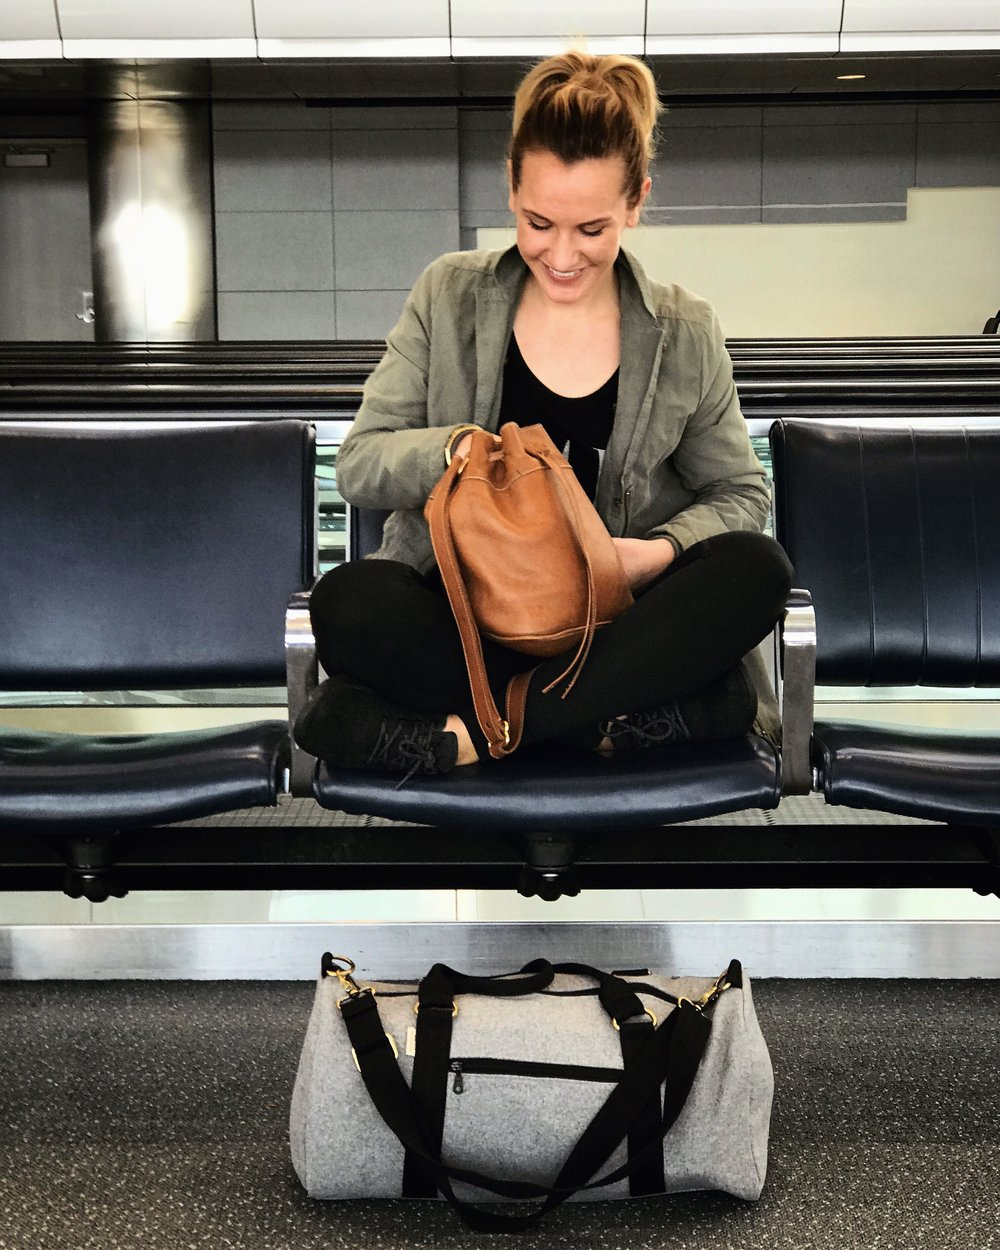 Finally, I found the perfect outfit to travel in. We had a long day of flying, but I was so comfortable wearing my  Girlfriend Collective leggings ,  Allbirds shoes ,  Krochet Kids tee  and secondhand jacket I've had for a while. My  Sseko purse  is always a go-to and all my outfits for the week fit perfectly in this duffle from  Meridian Lee .